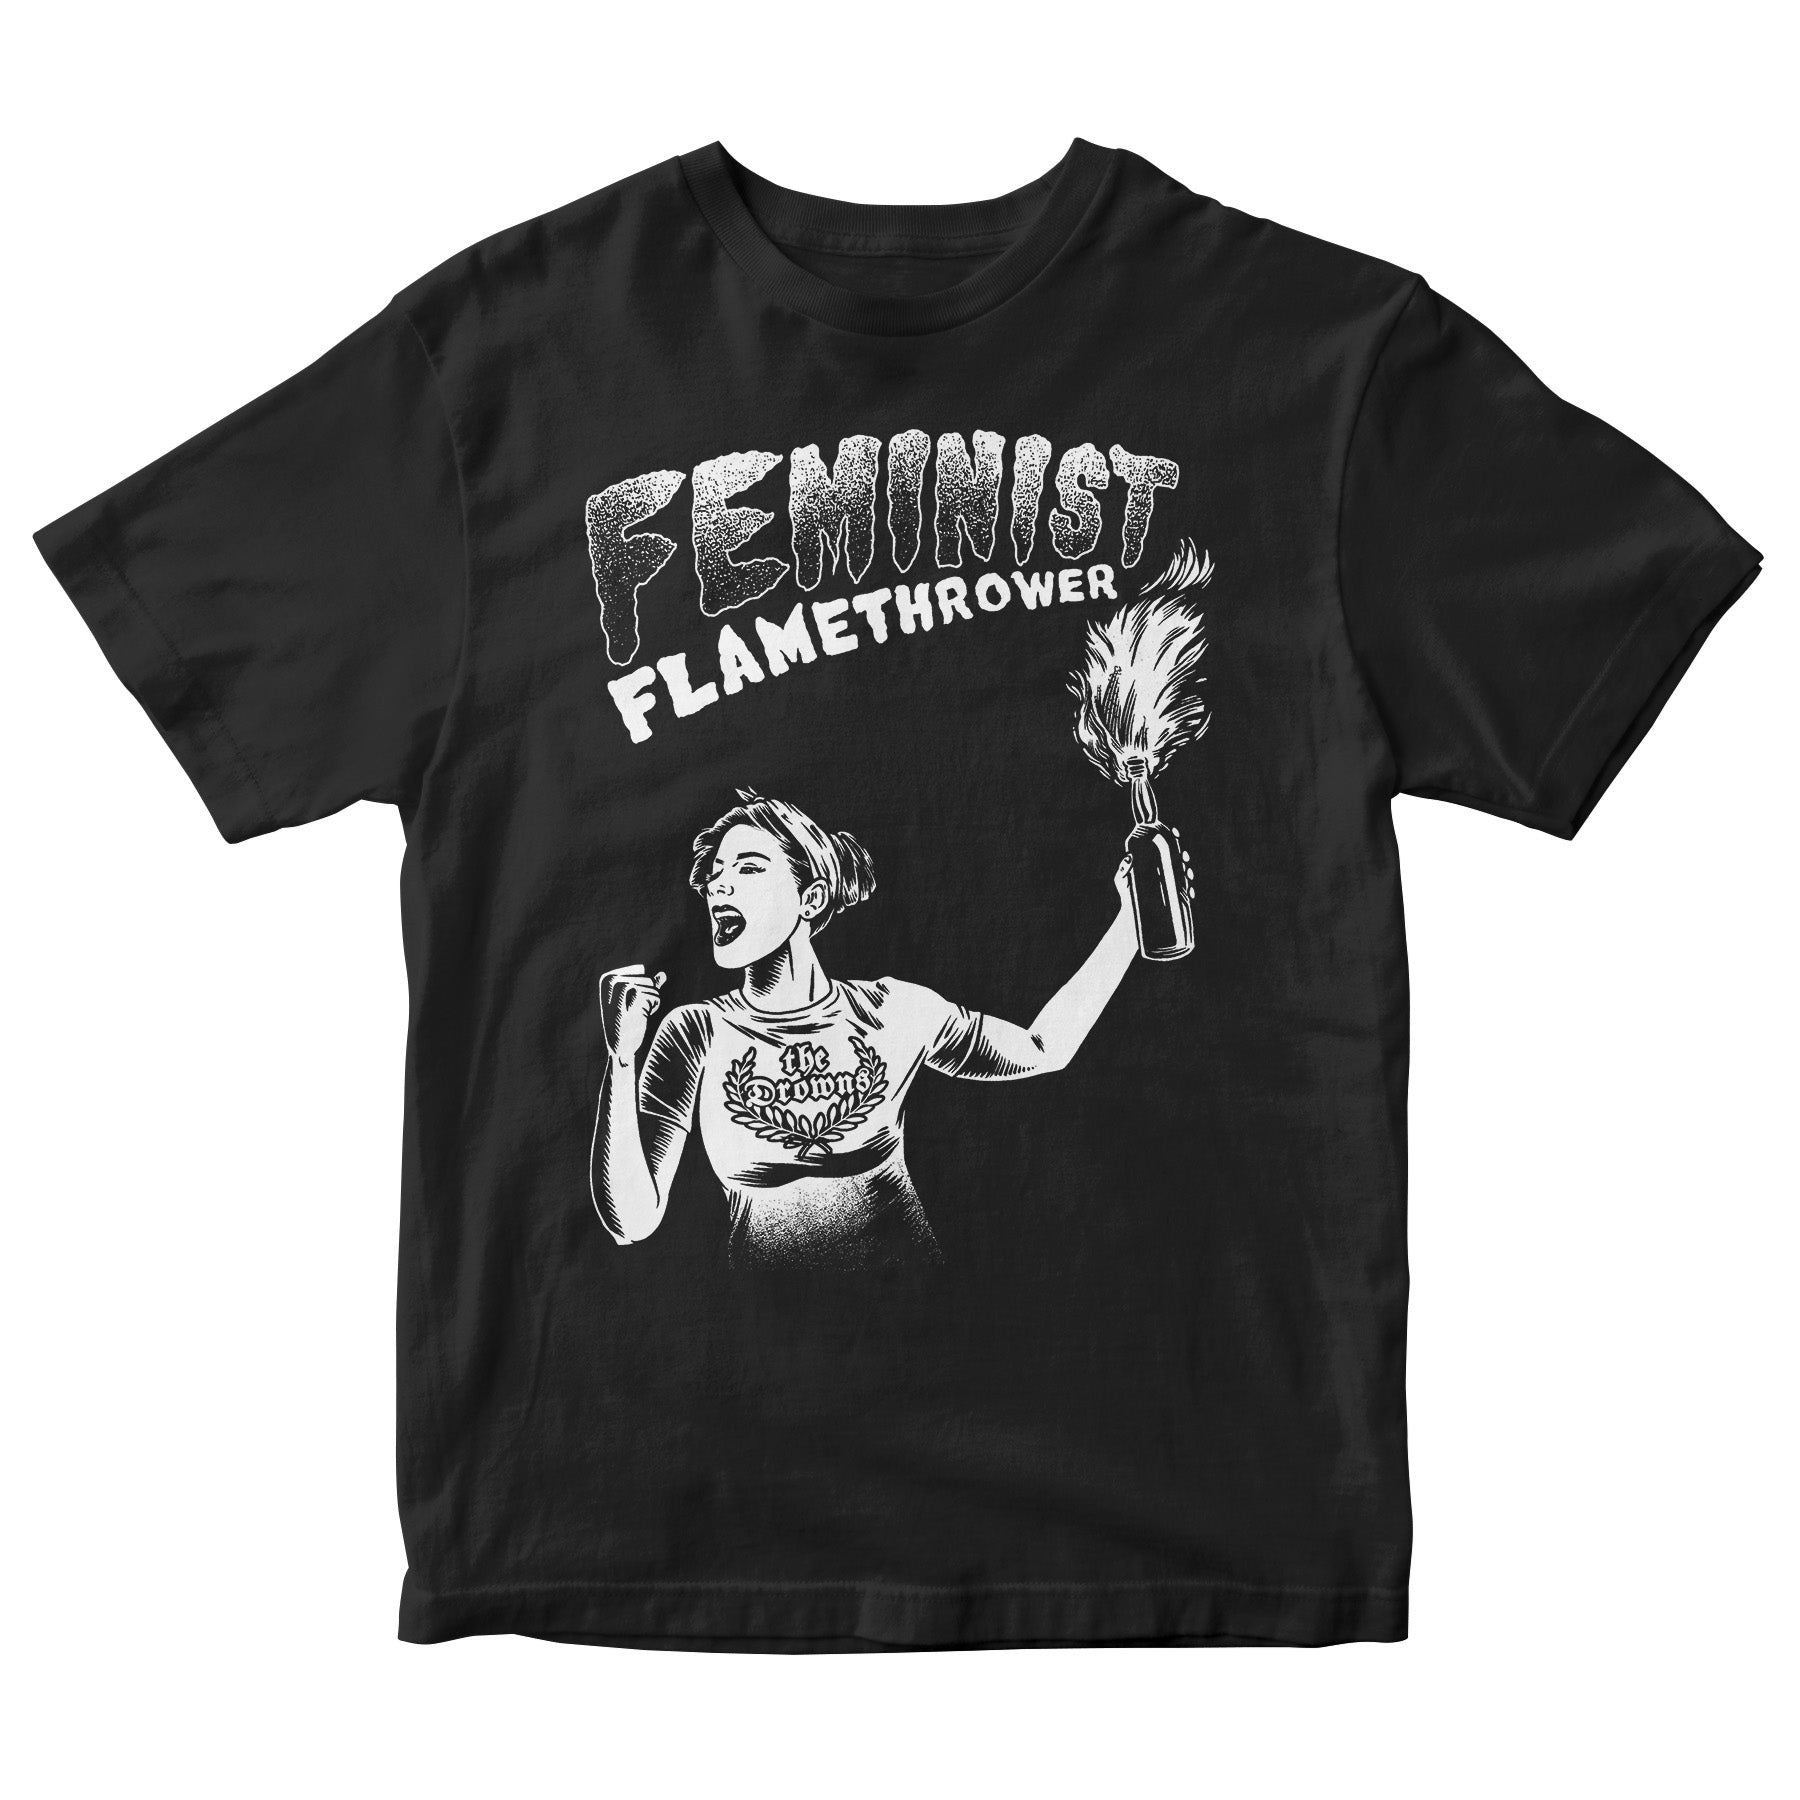 The Drowns - Feminist Flamethrower - White On Black - T-Shirt